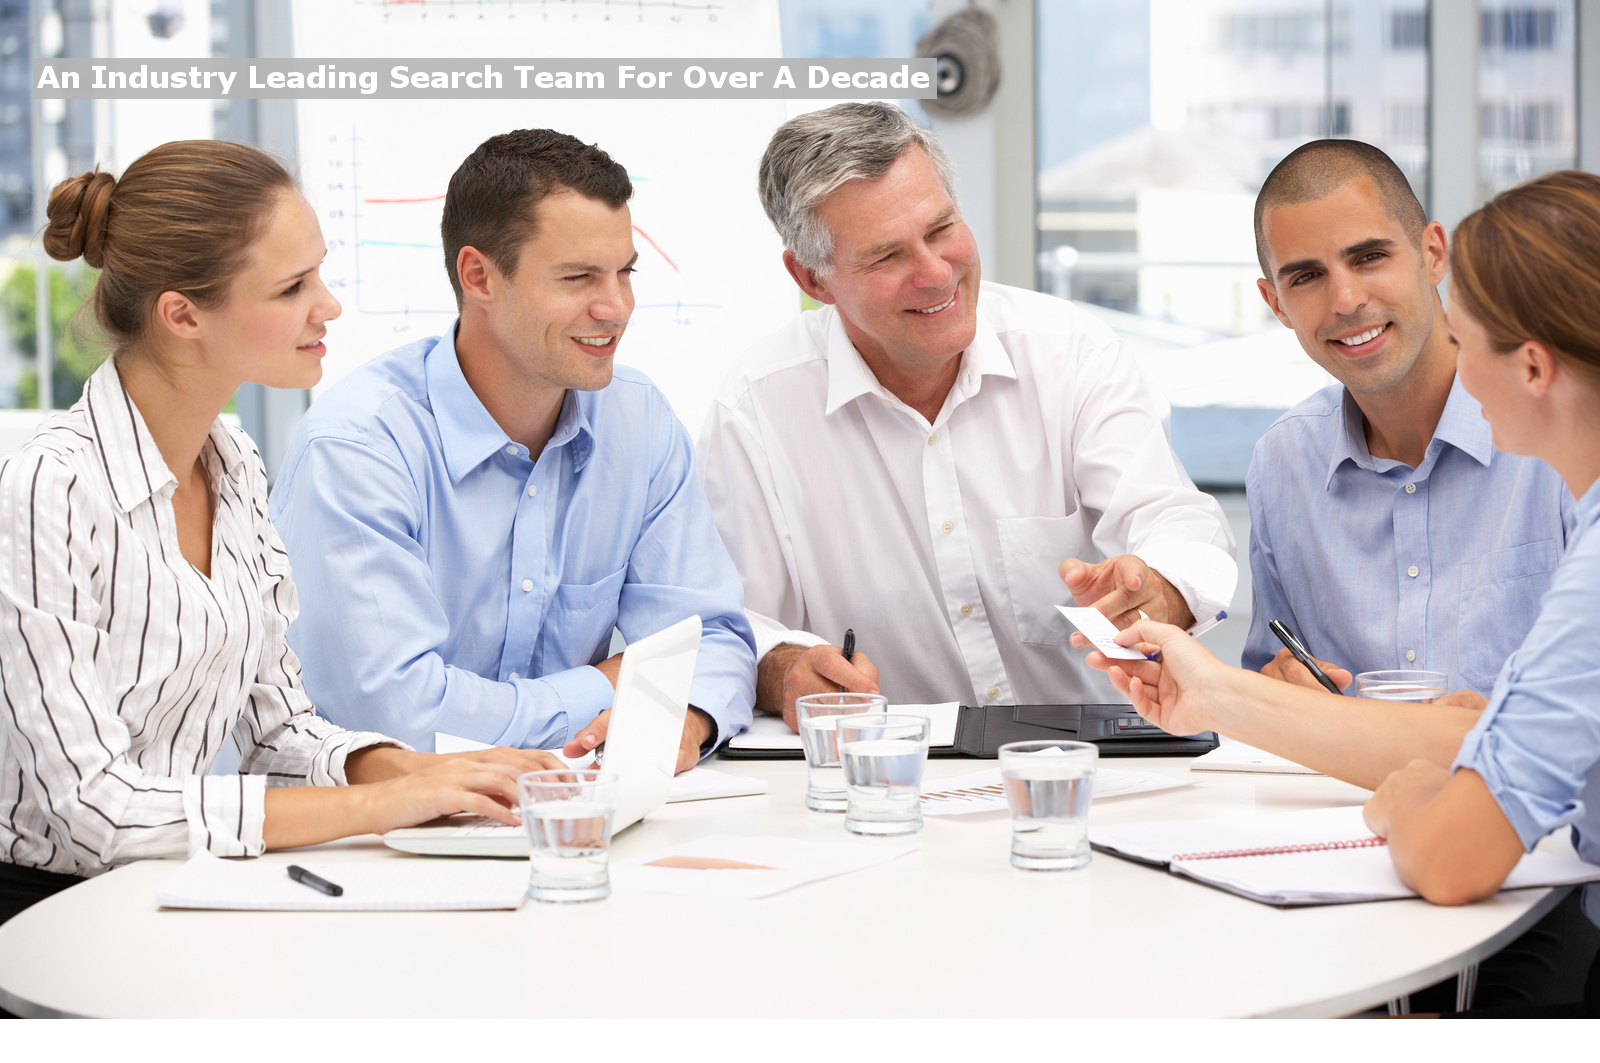 bigstock-Business-people-in-meeting-22524476-Worded